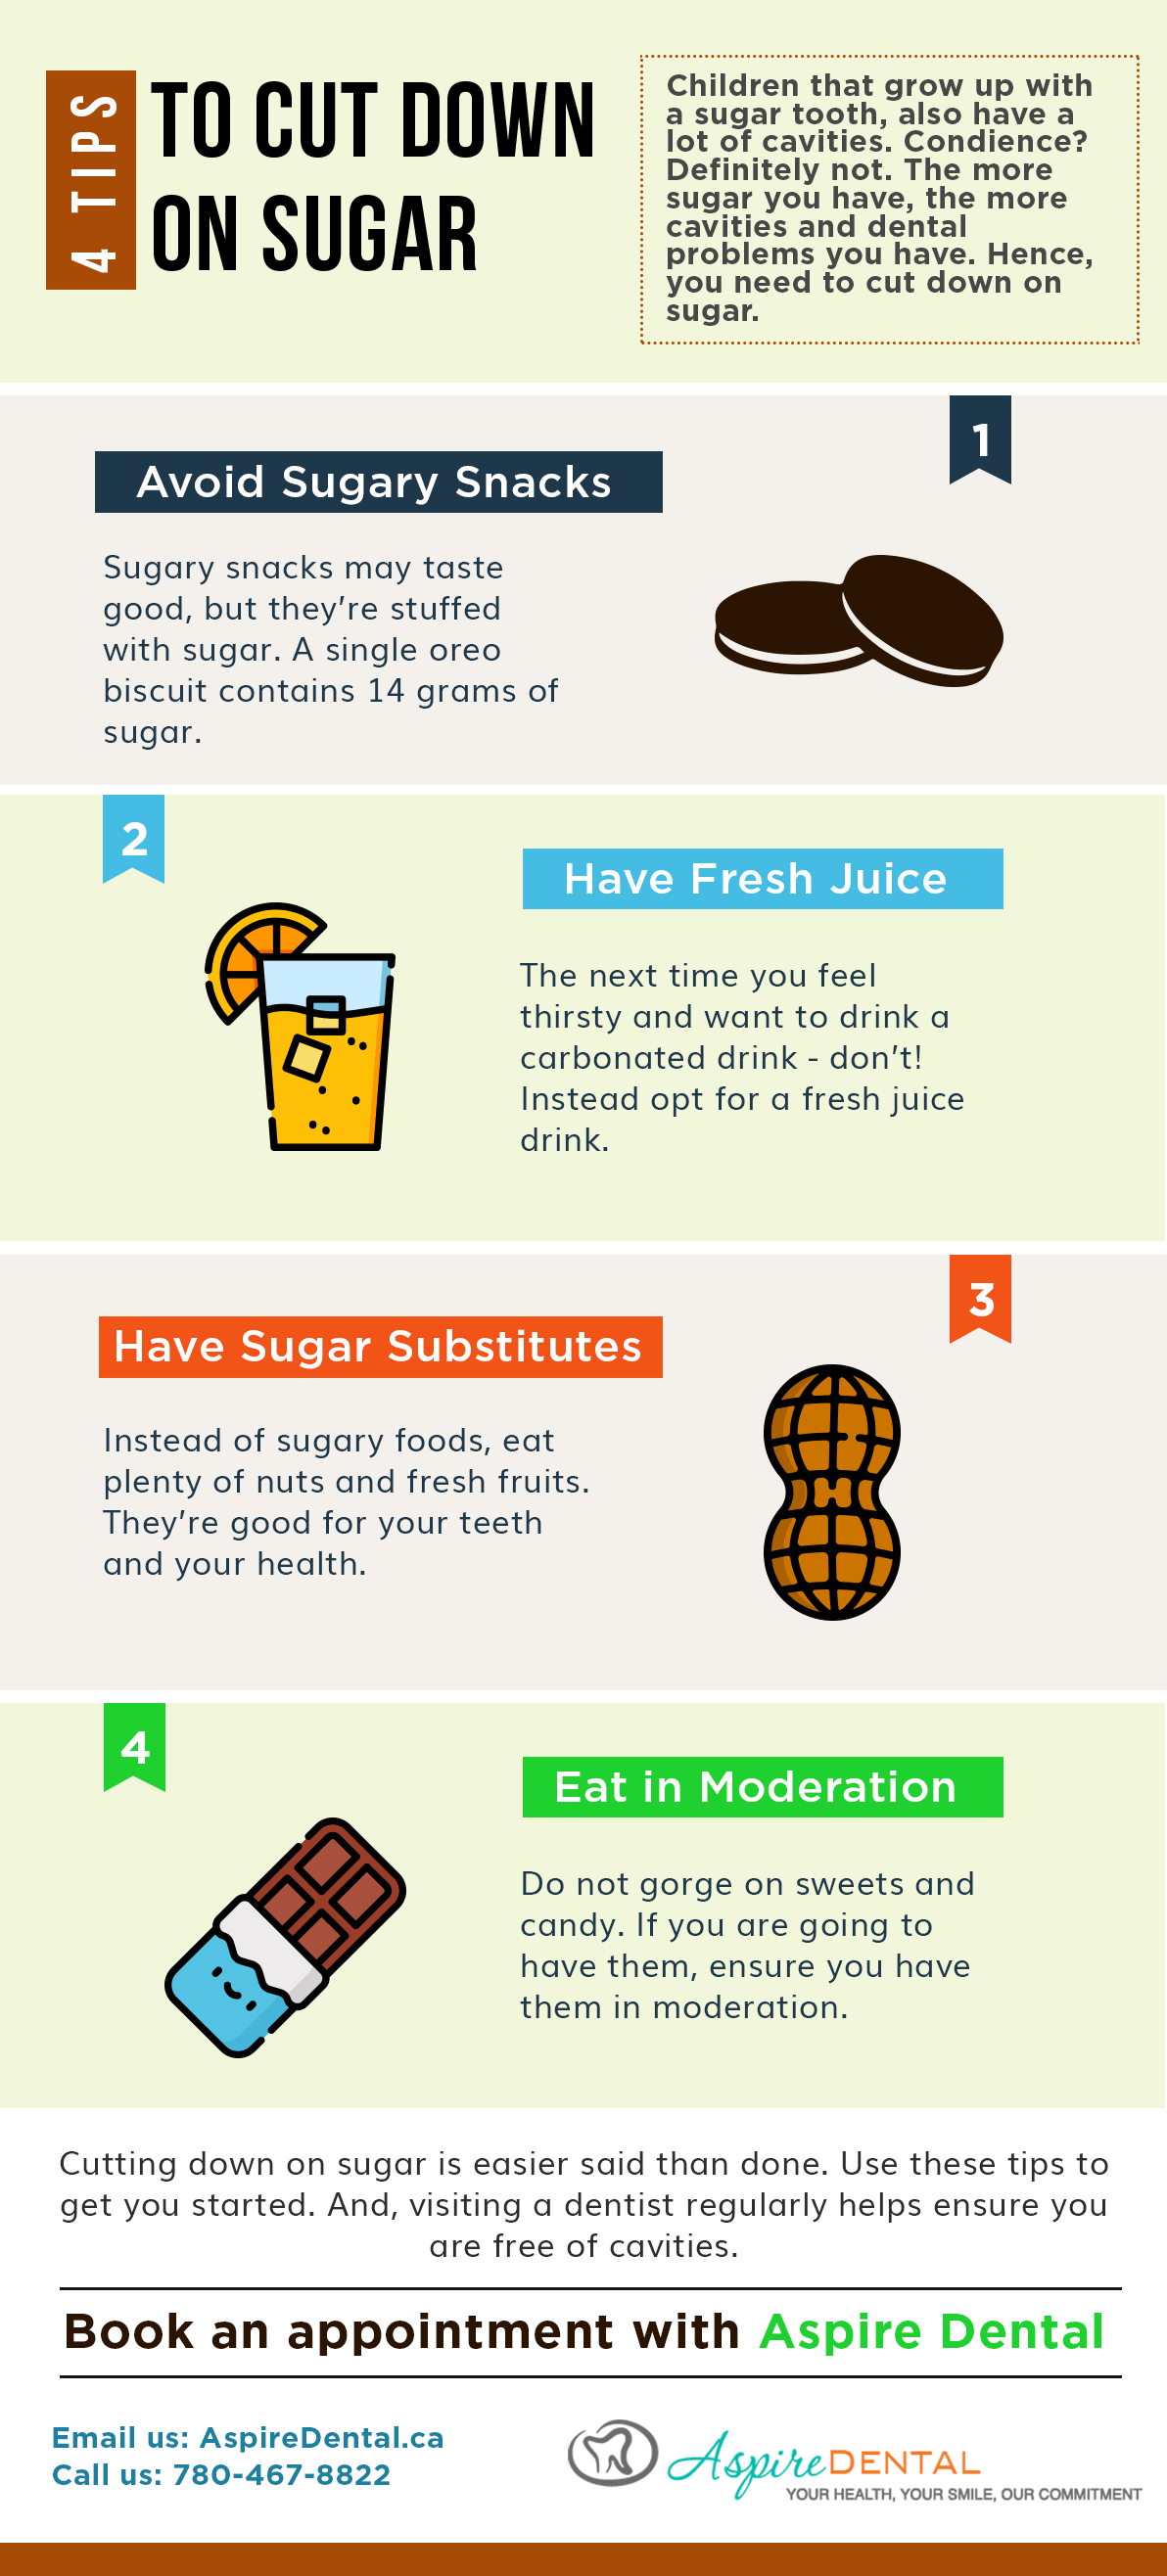 Tips to cut down on Sugar